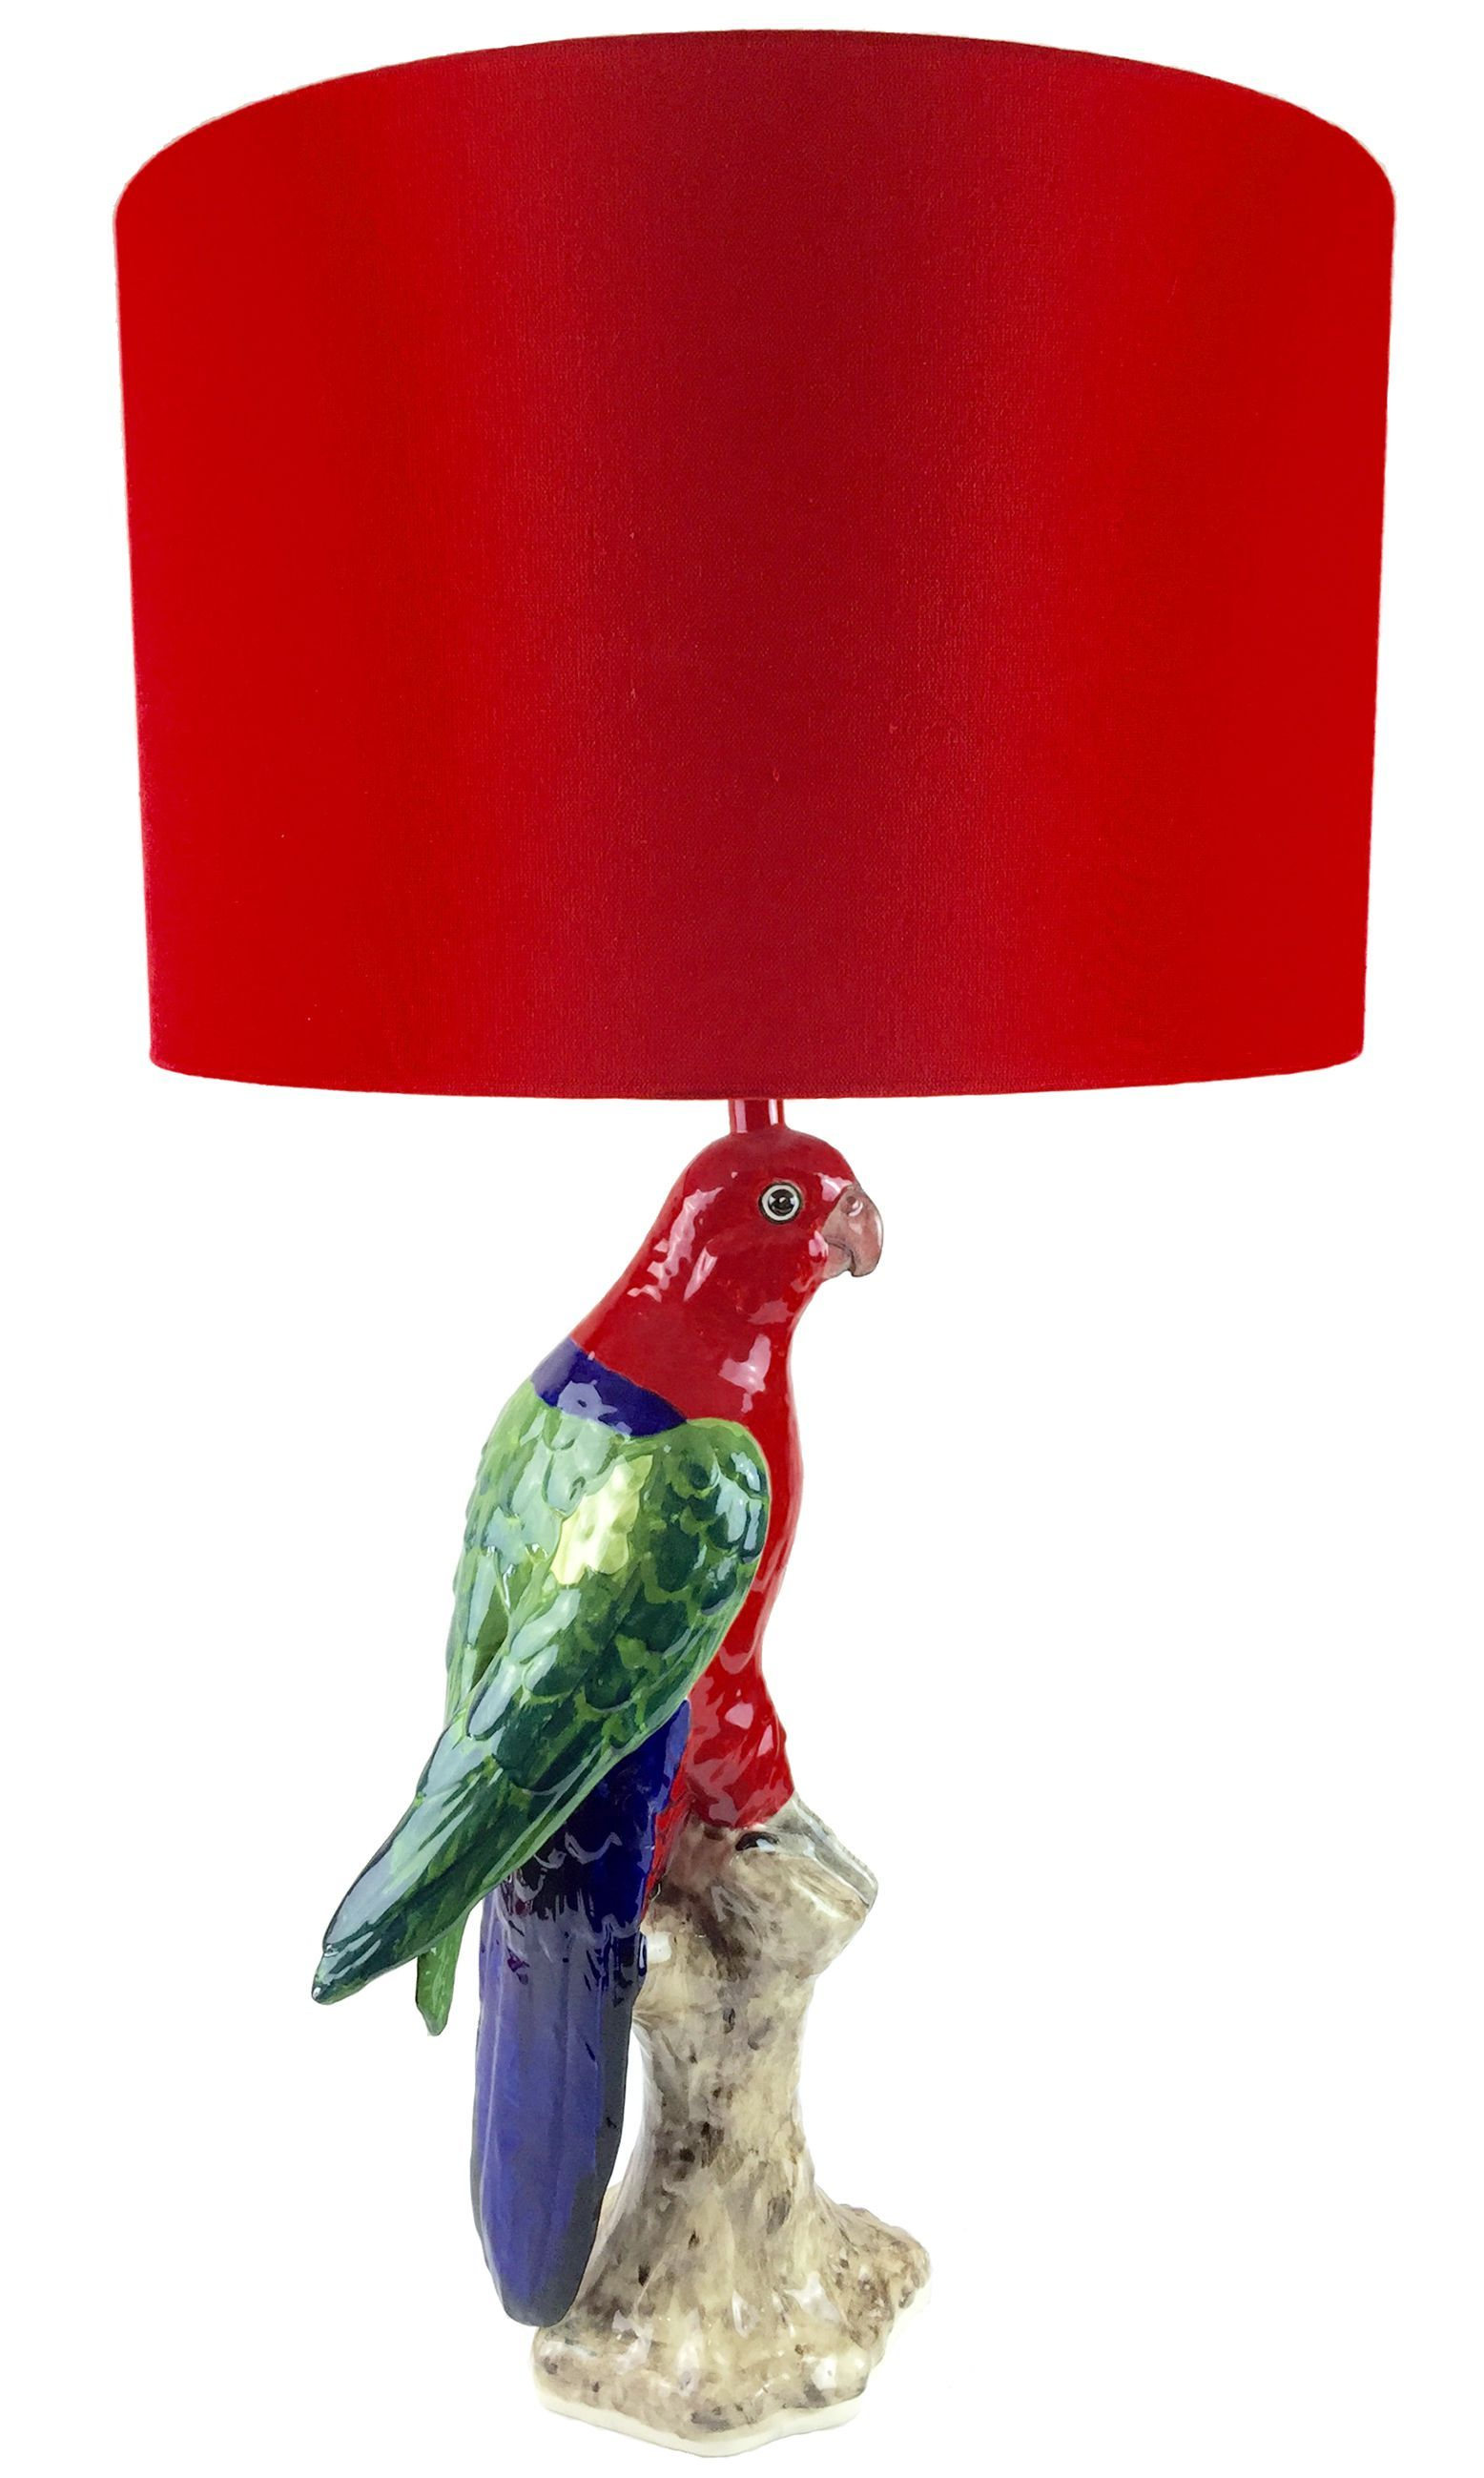 King parrot table lamp gifts pinterest display and interiors